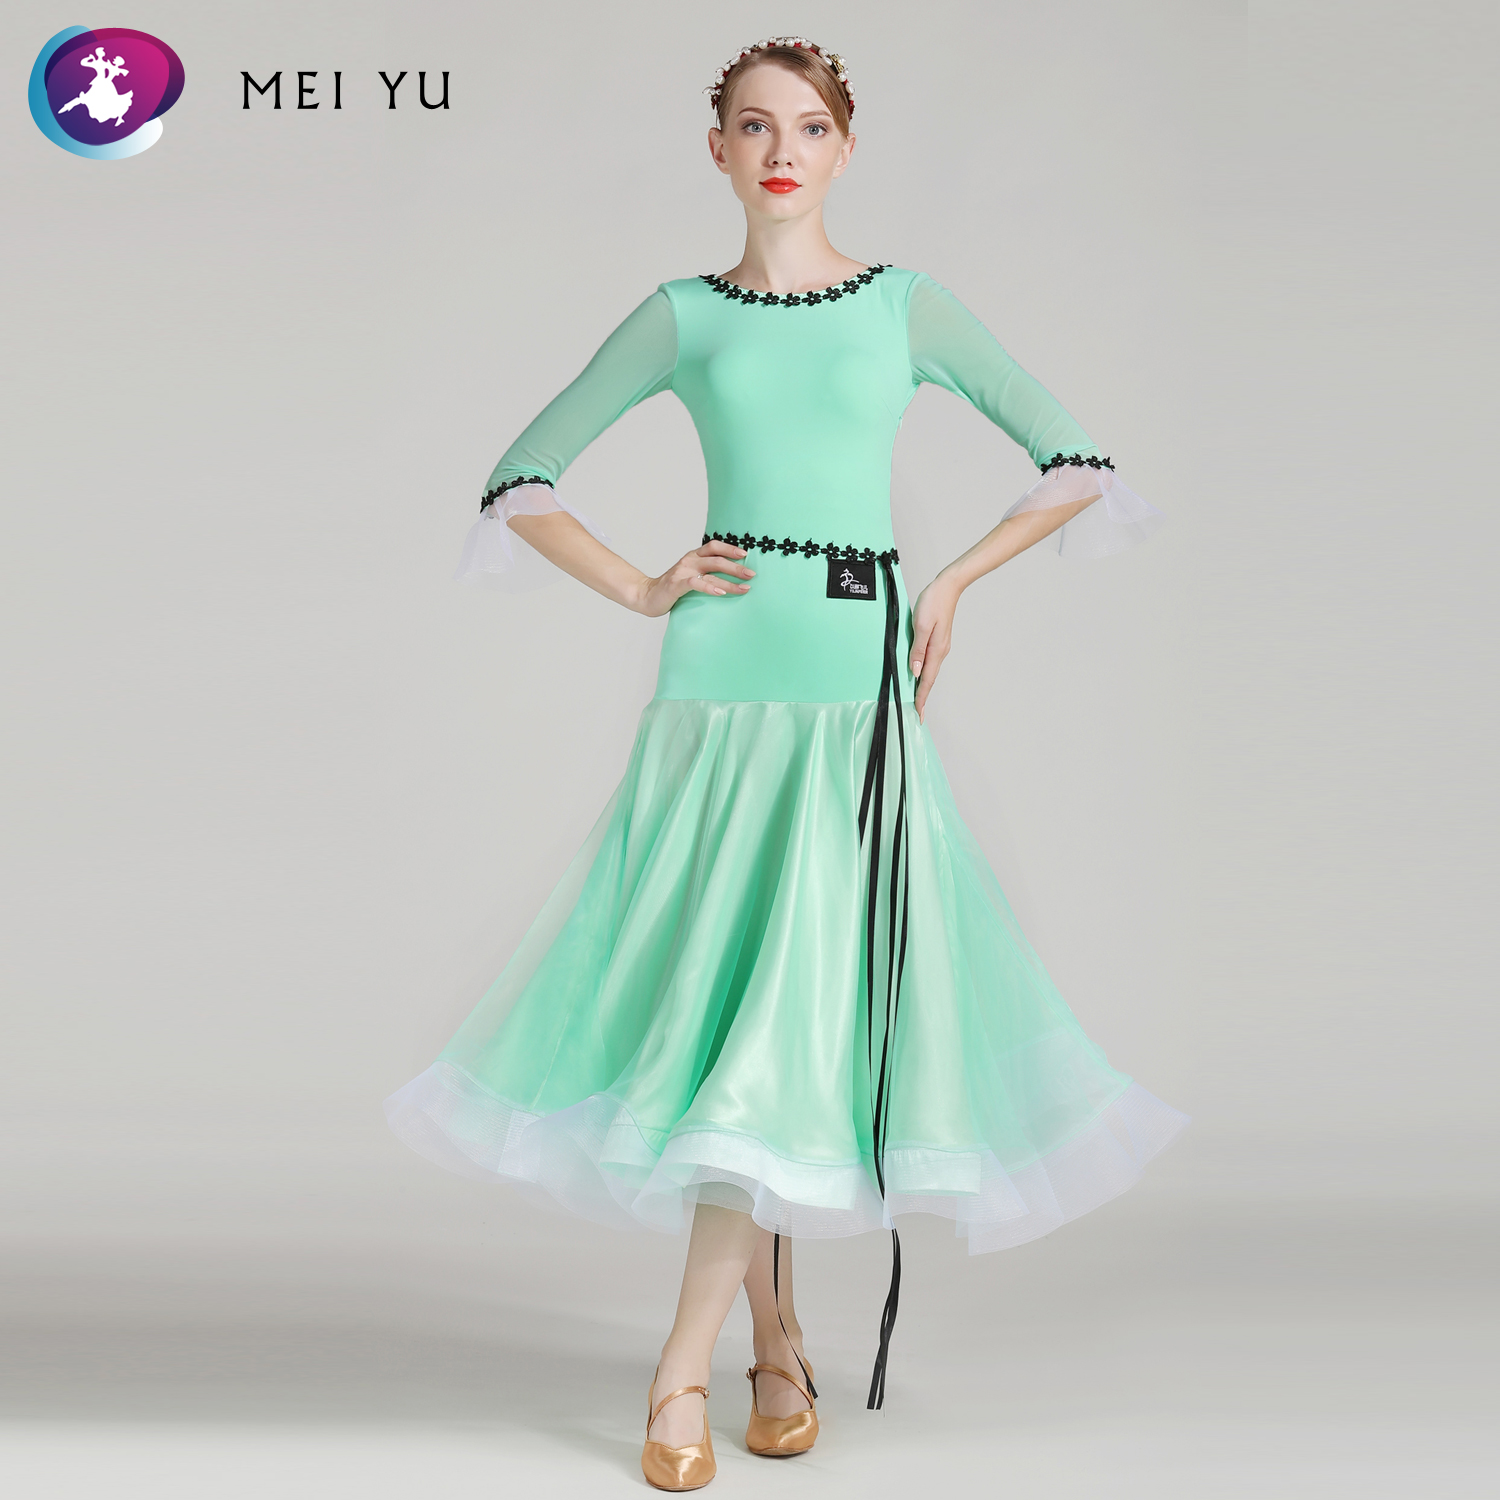 Frugal Mei Yu S7006 Modern Dance Costume Women Ladies Adults Dancewear Waltzing Tango Ballroom Costume Evening Party Dress Quality And Quantity Assured Stage & Dance Wear Ballroom